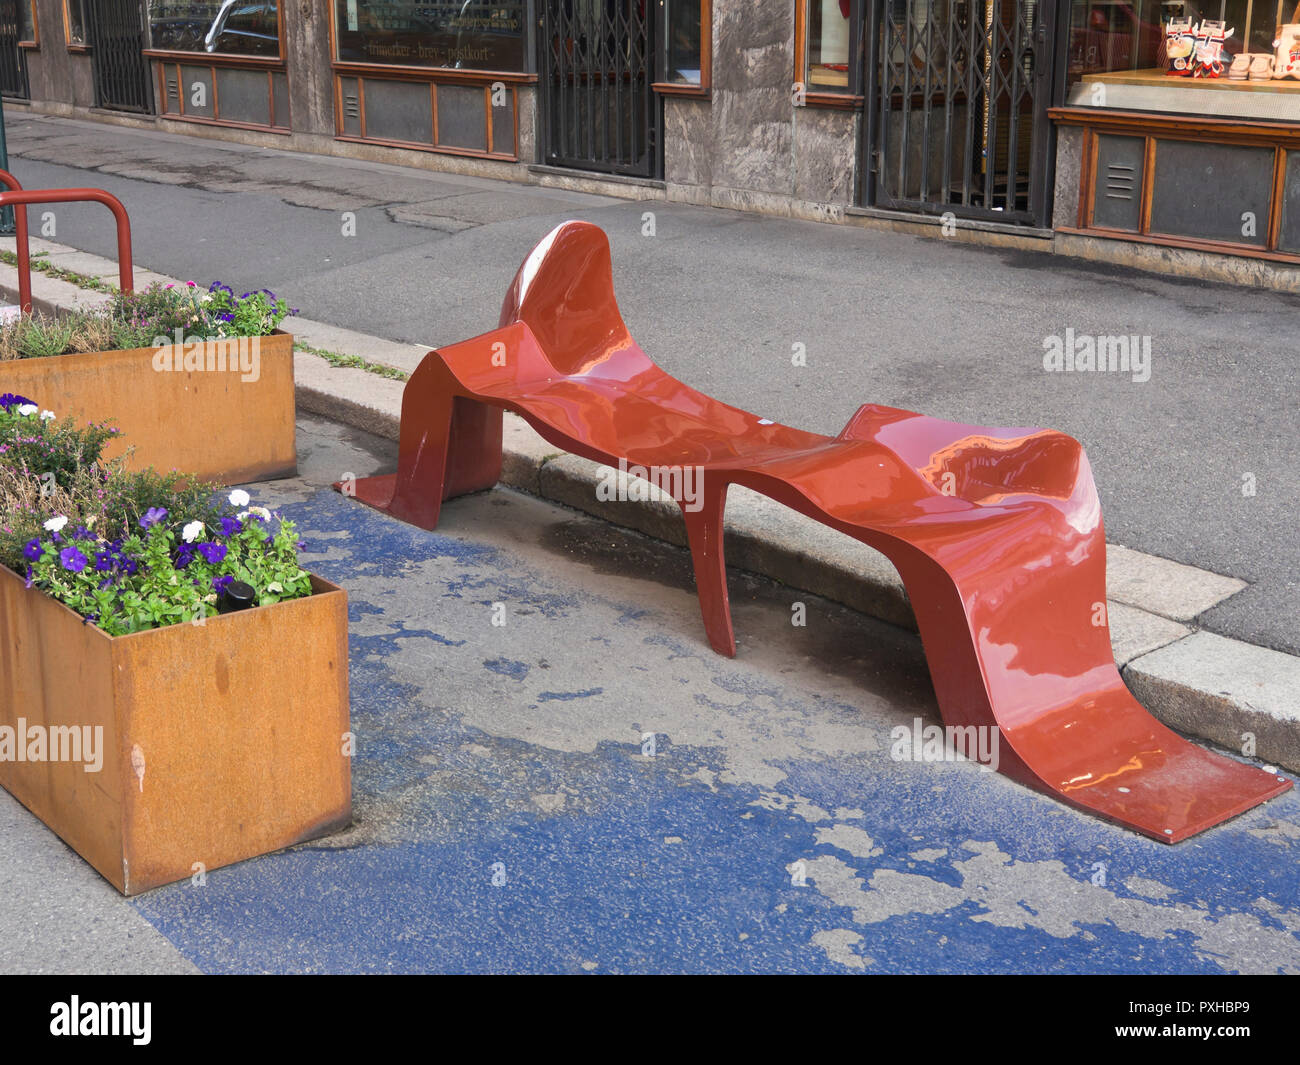 Street furniture and flowerboxes in the centre of Oslo Norway, trying out ways to use the car free sones - Stock Image